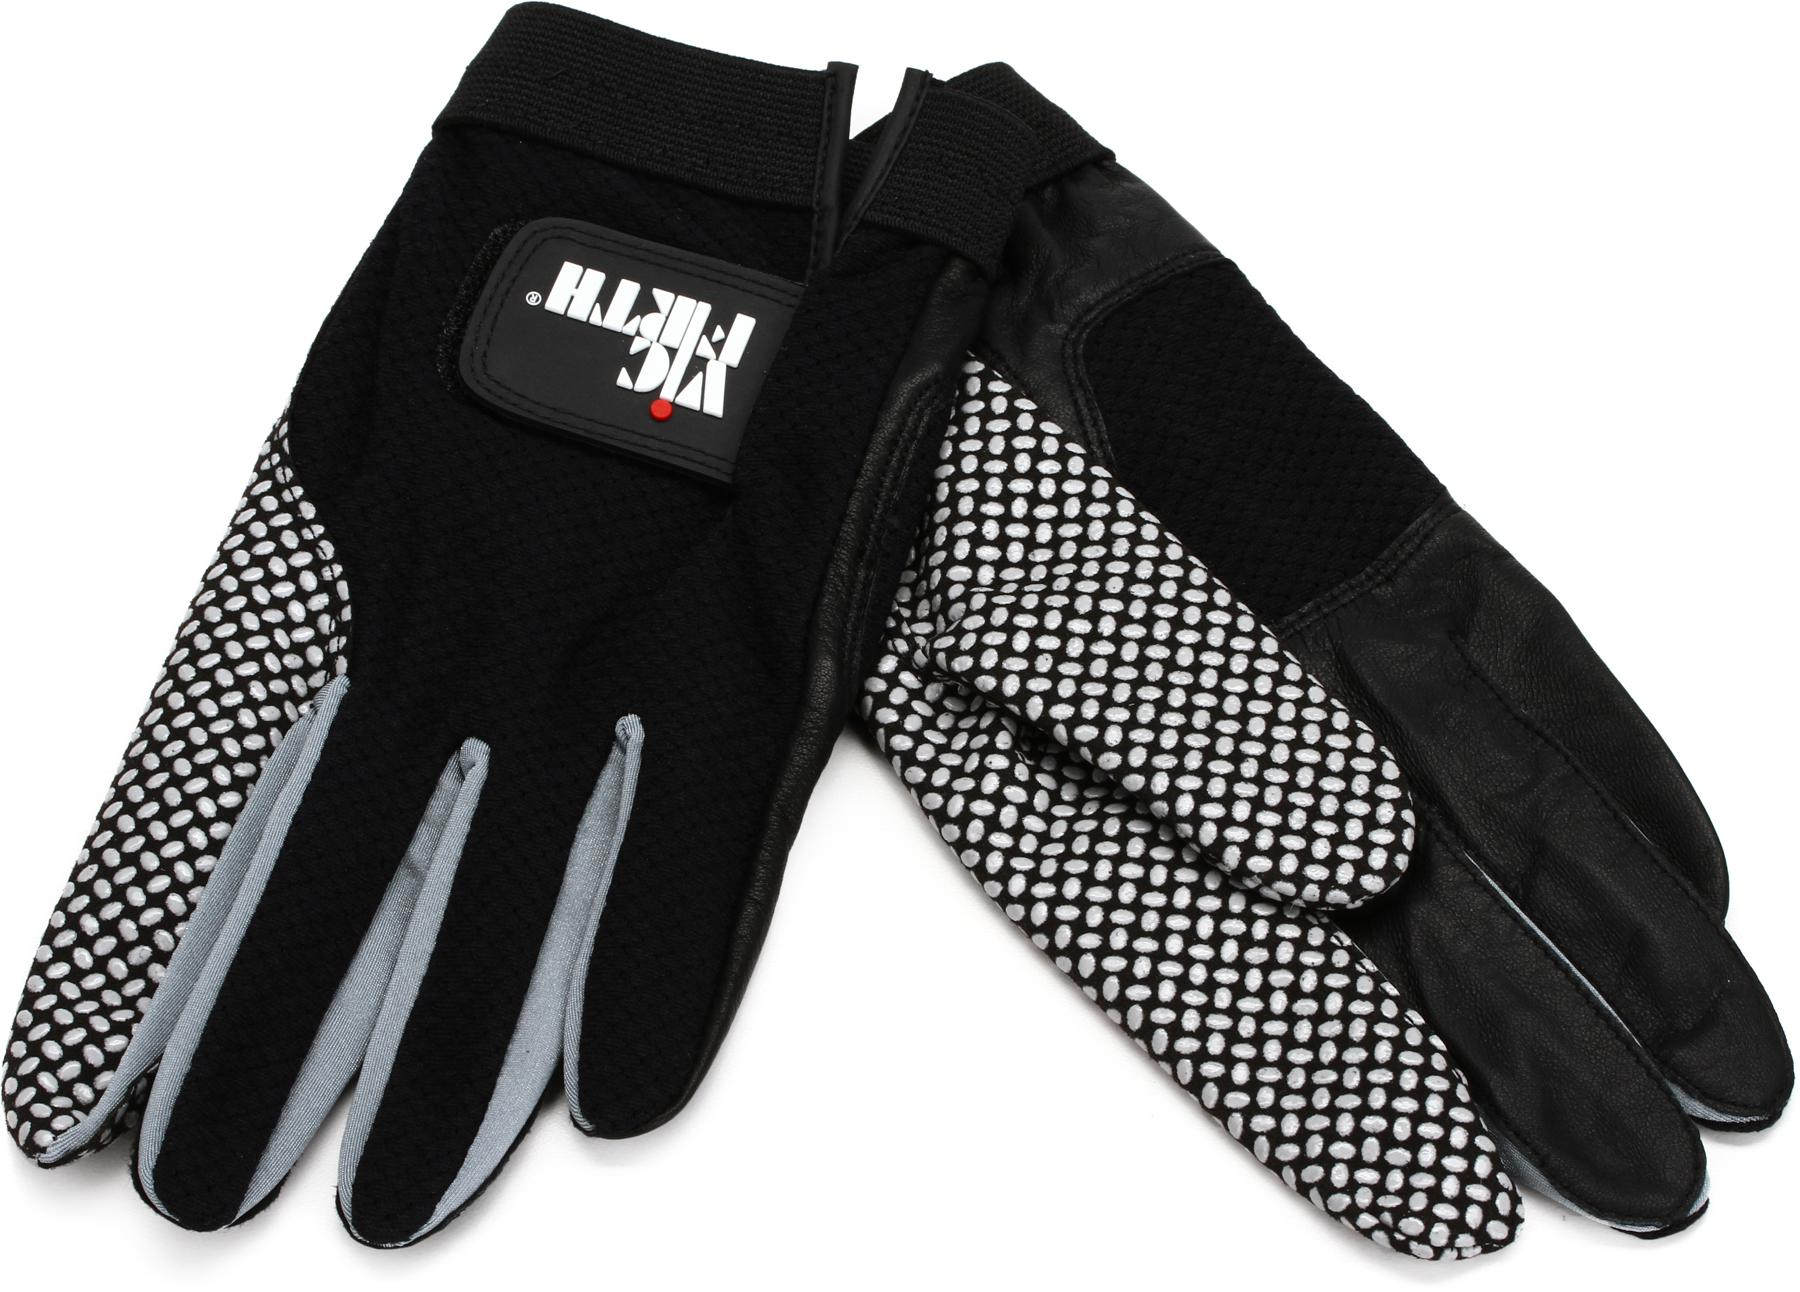 5. Vic Firth Drumming Gloves